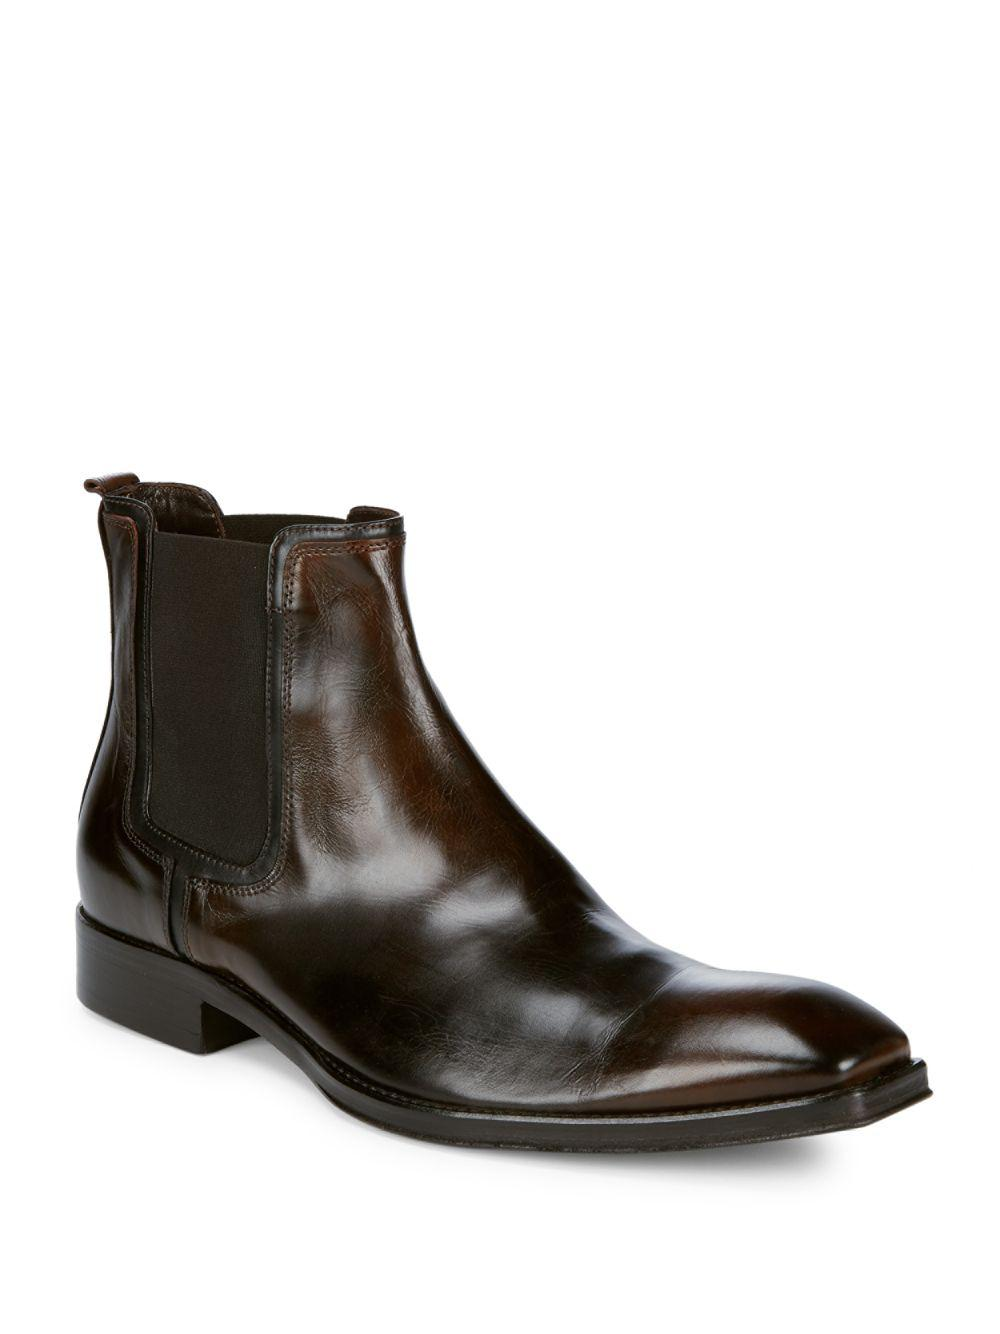 61bf12e573c Jo Ghost Square Toe Leather Chelsea Boots in Brown for Men - Lyst